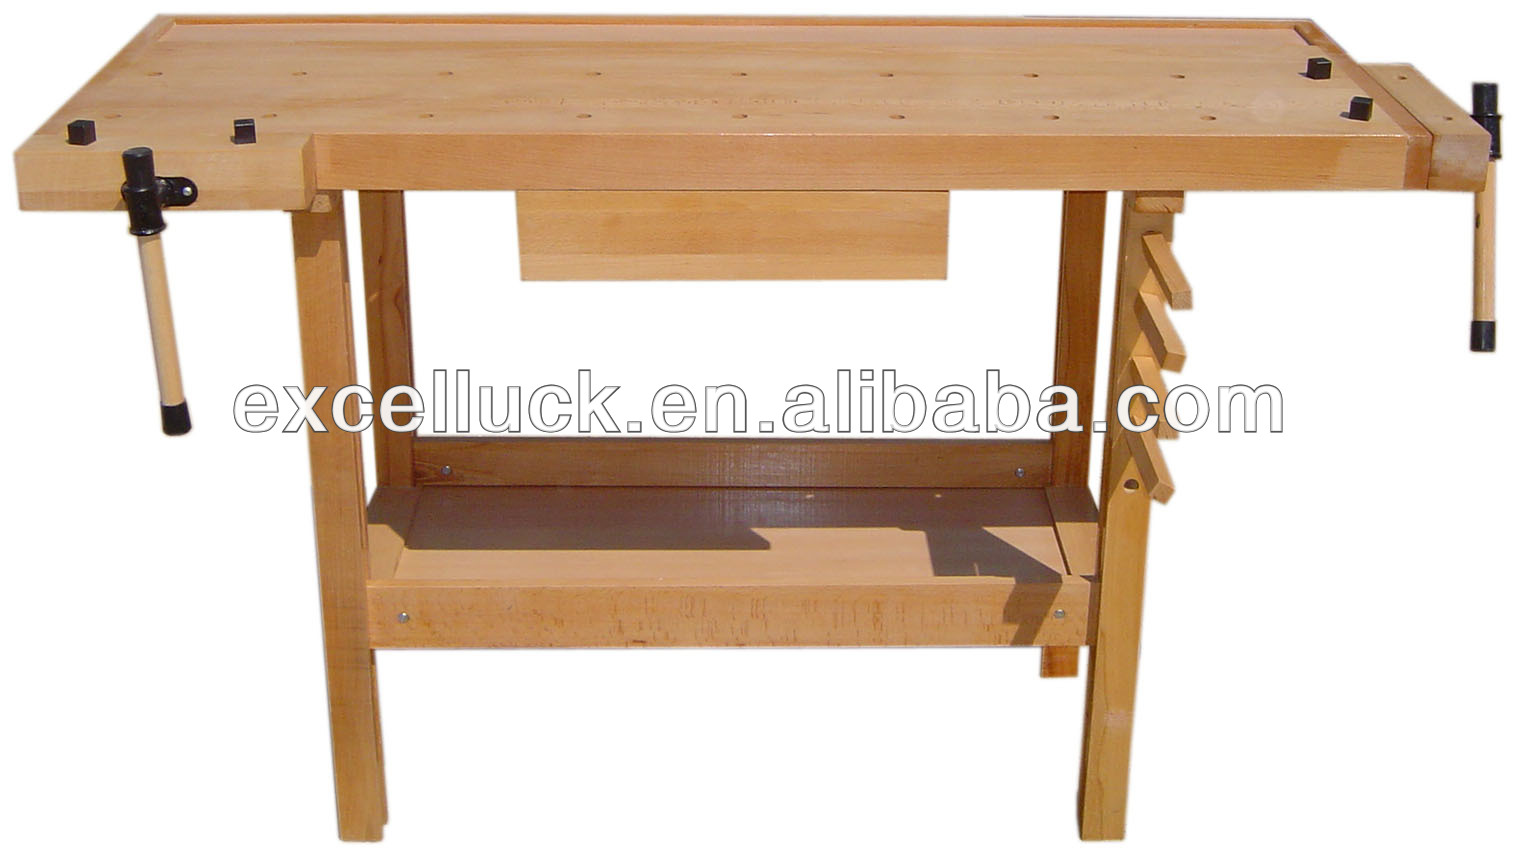 Imported Germany Beech Woodworking Bench For Sale Buy Imported Germany Beech Woodworking Bench